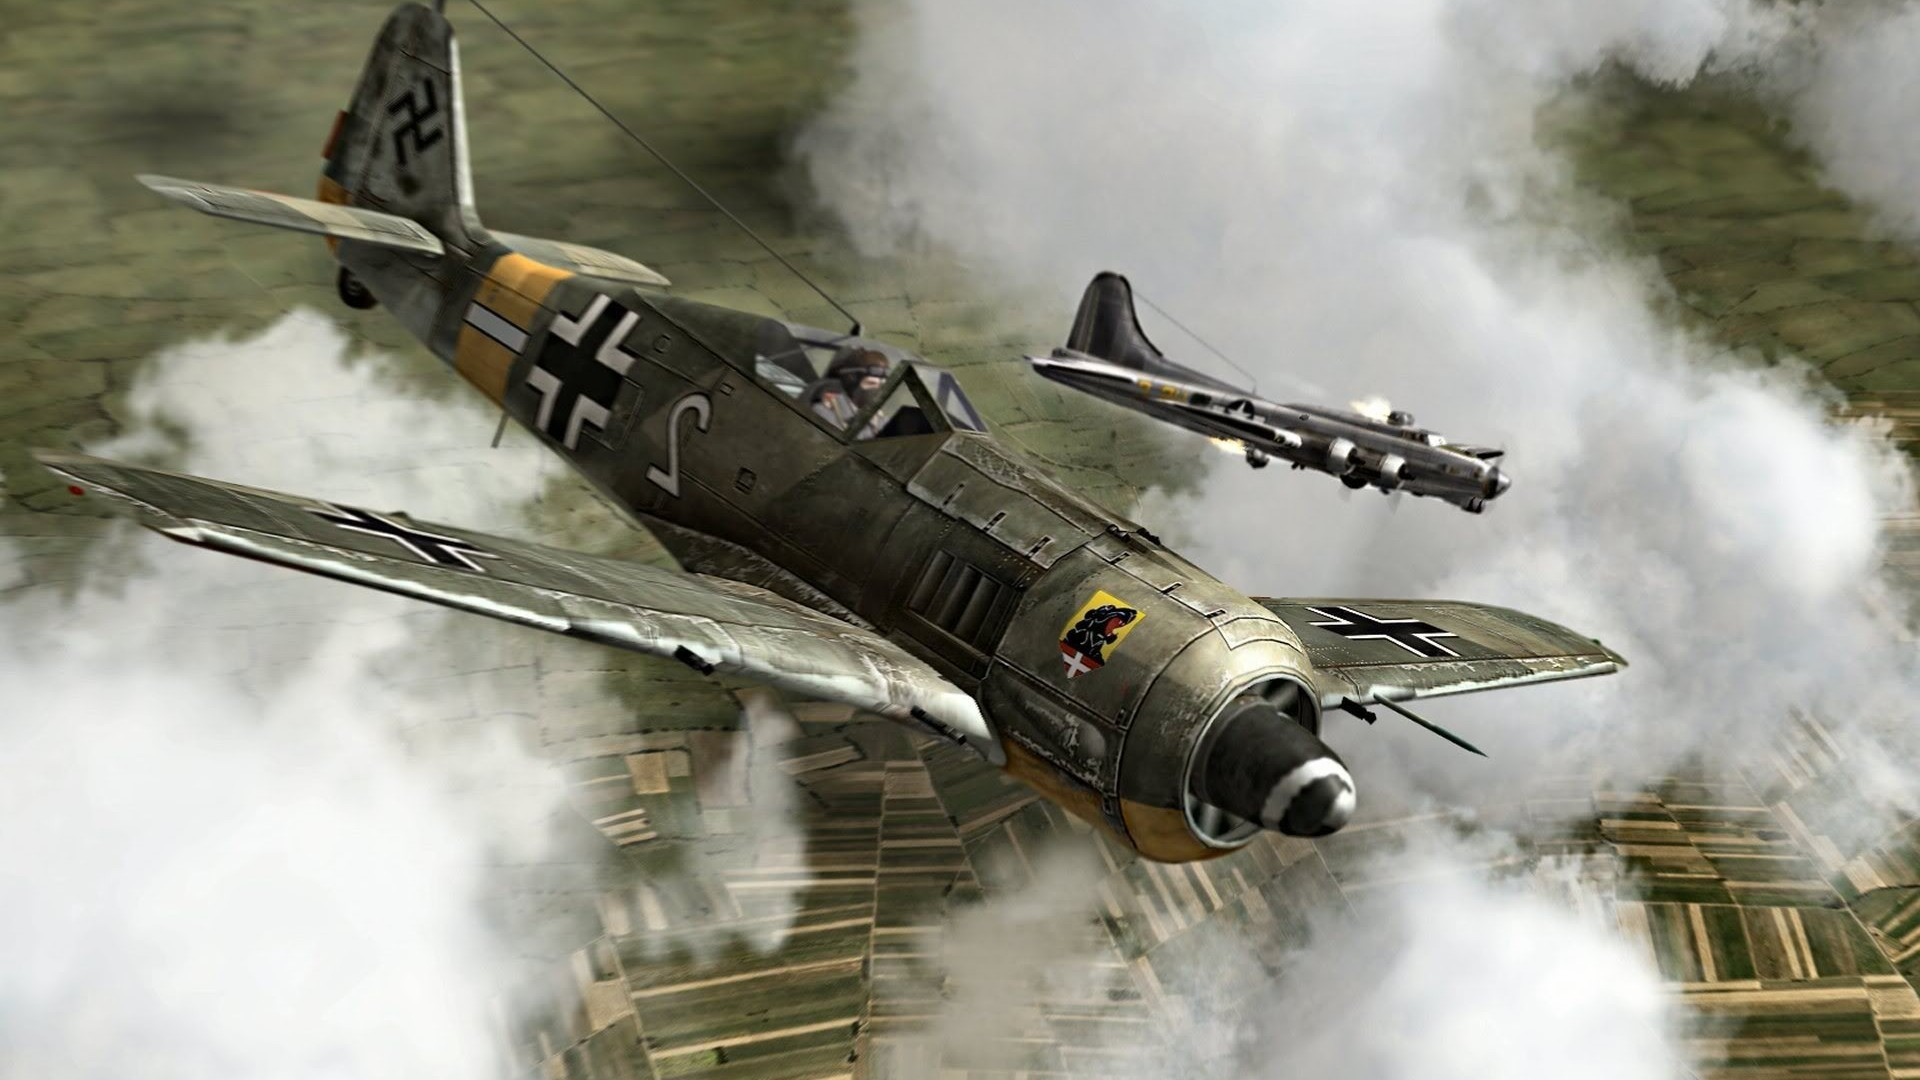 wwii fighter planes wallpapers 1920x1080 81 images